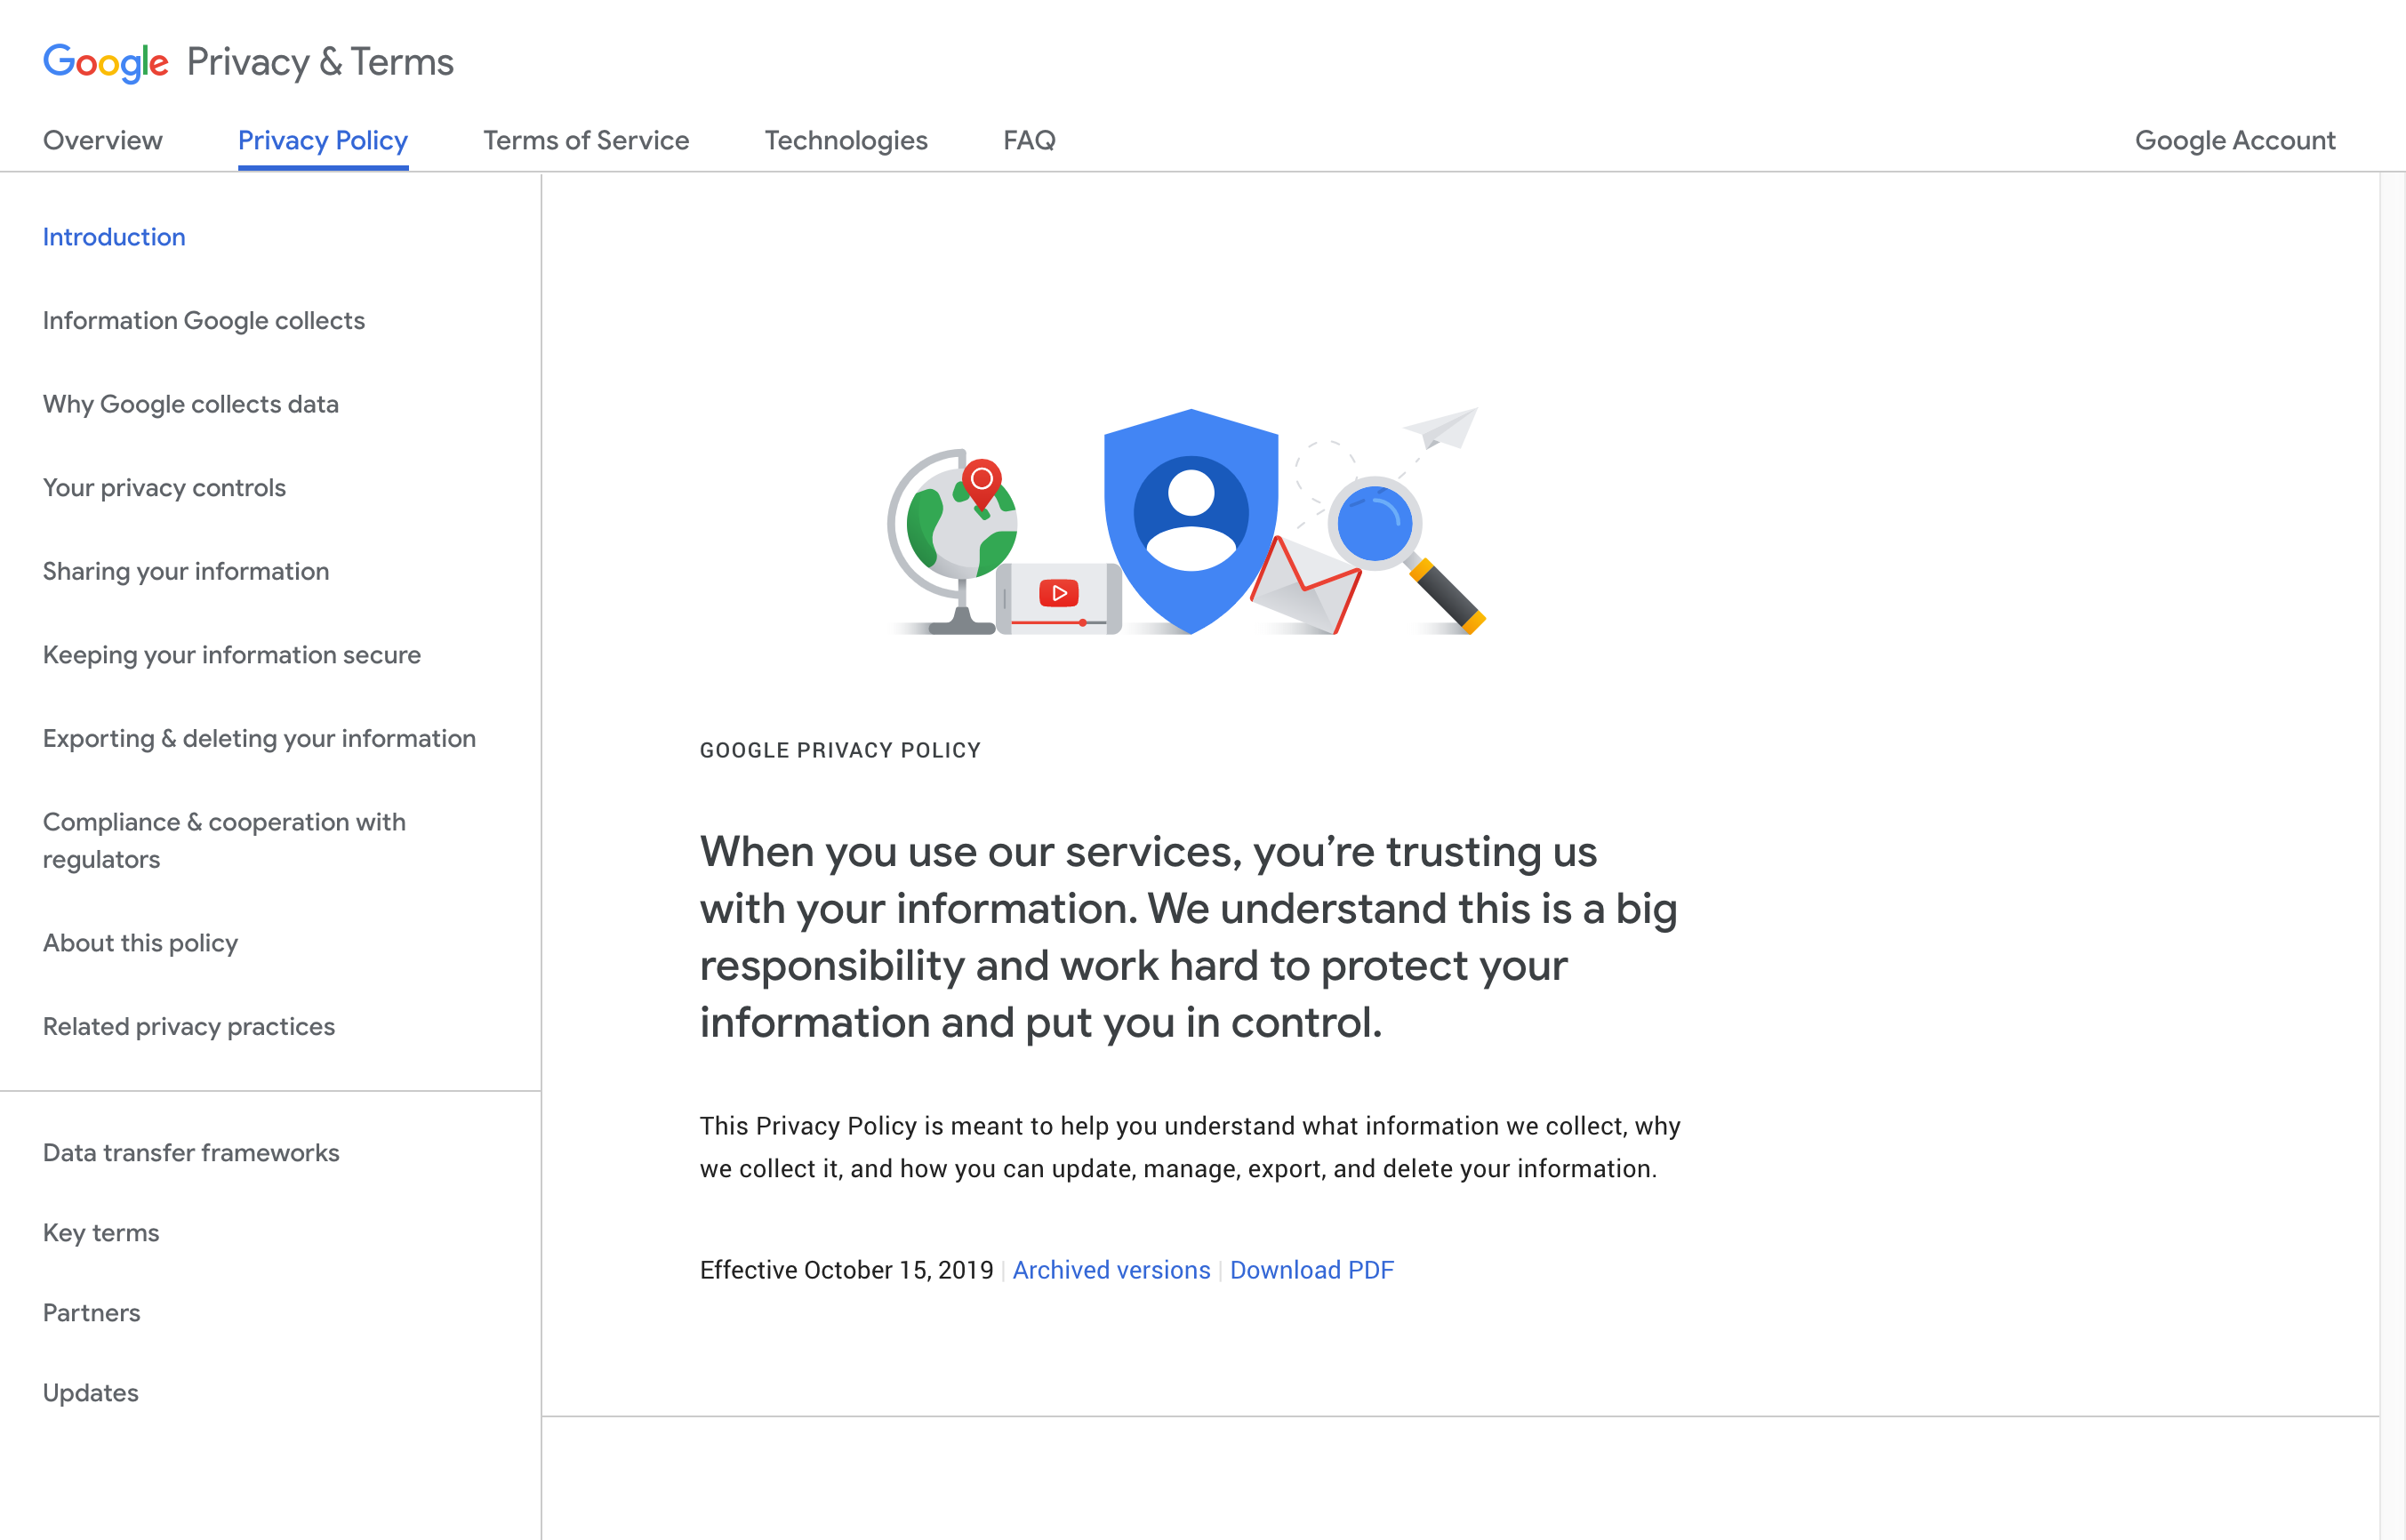 Google Tos Privacy Policy Google Privacy Privacy